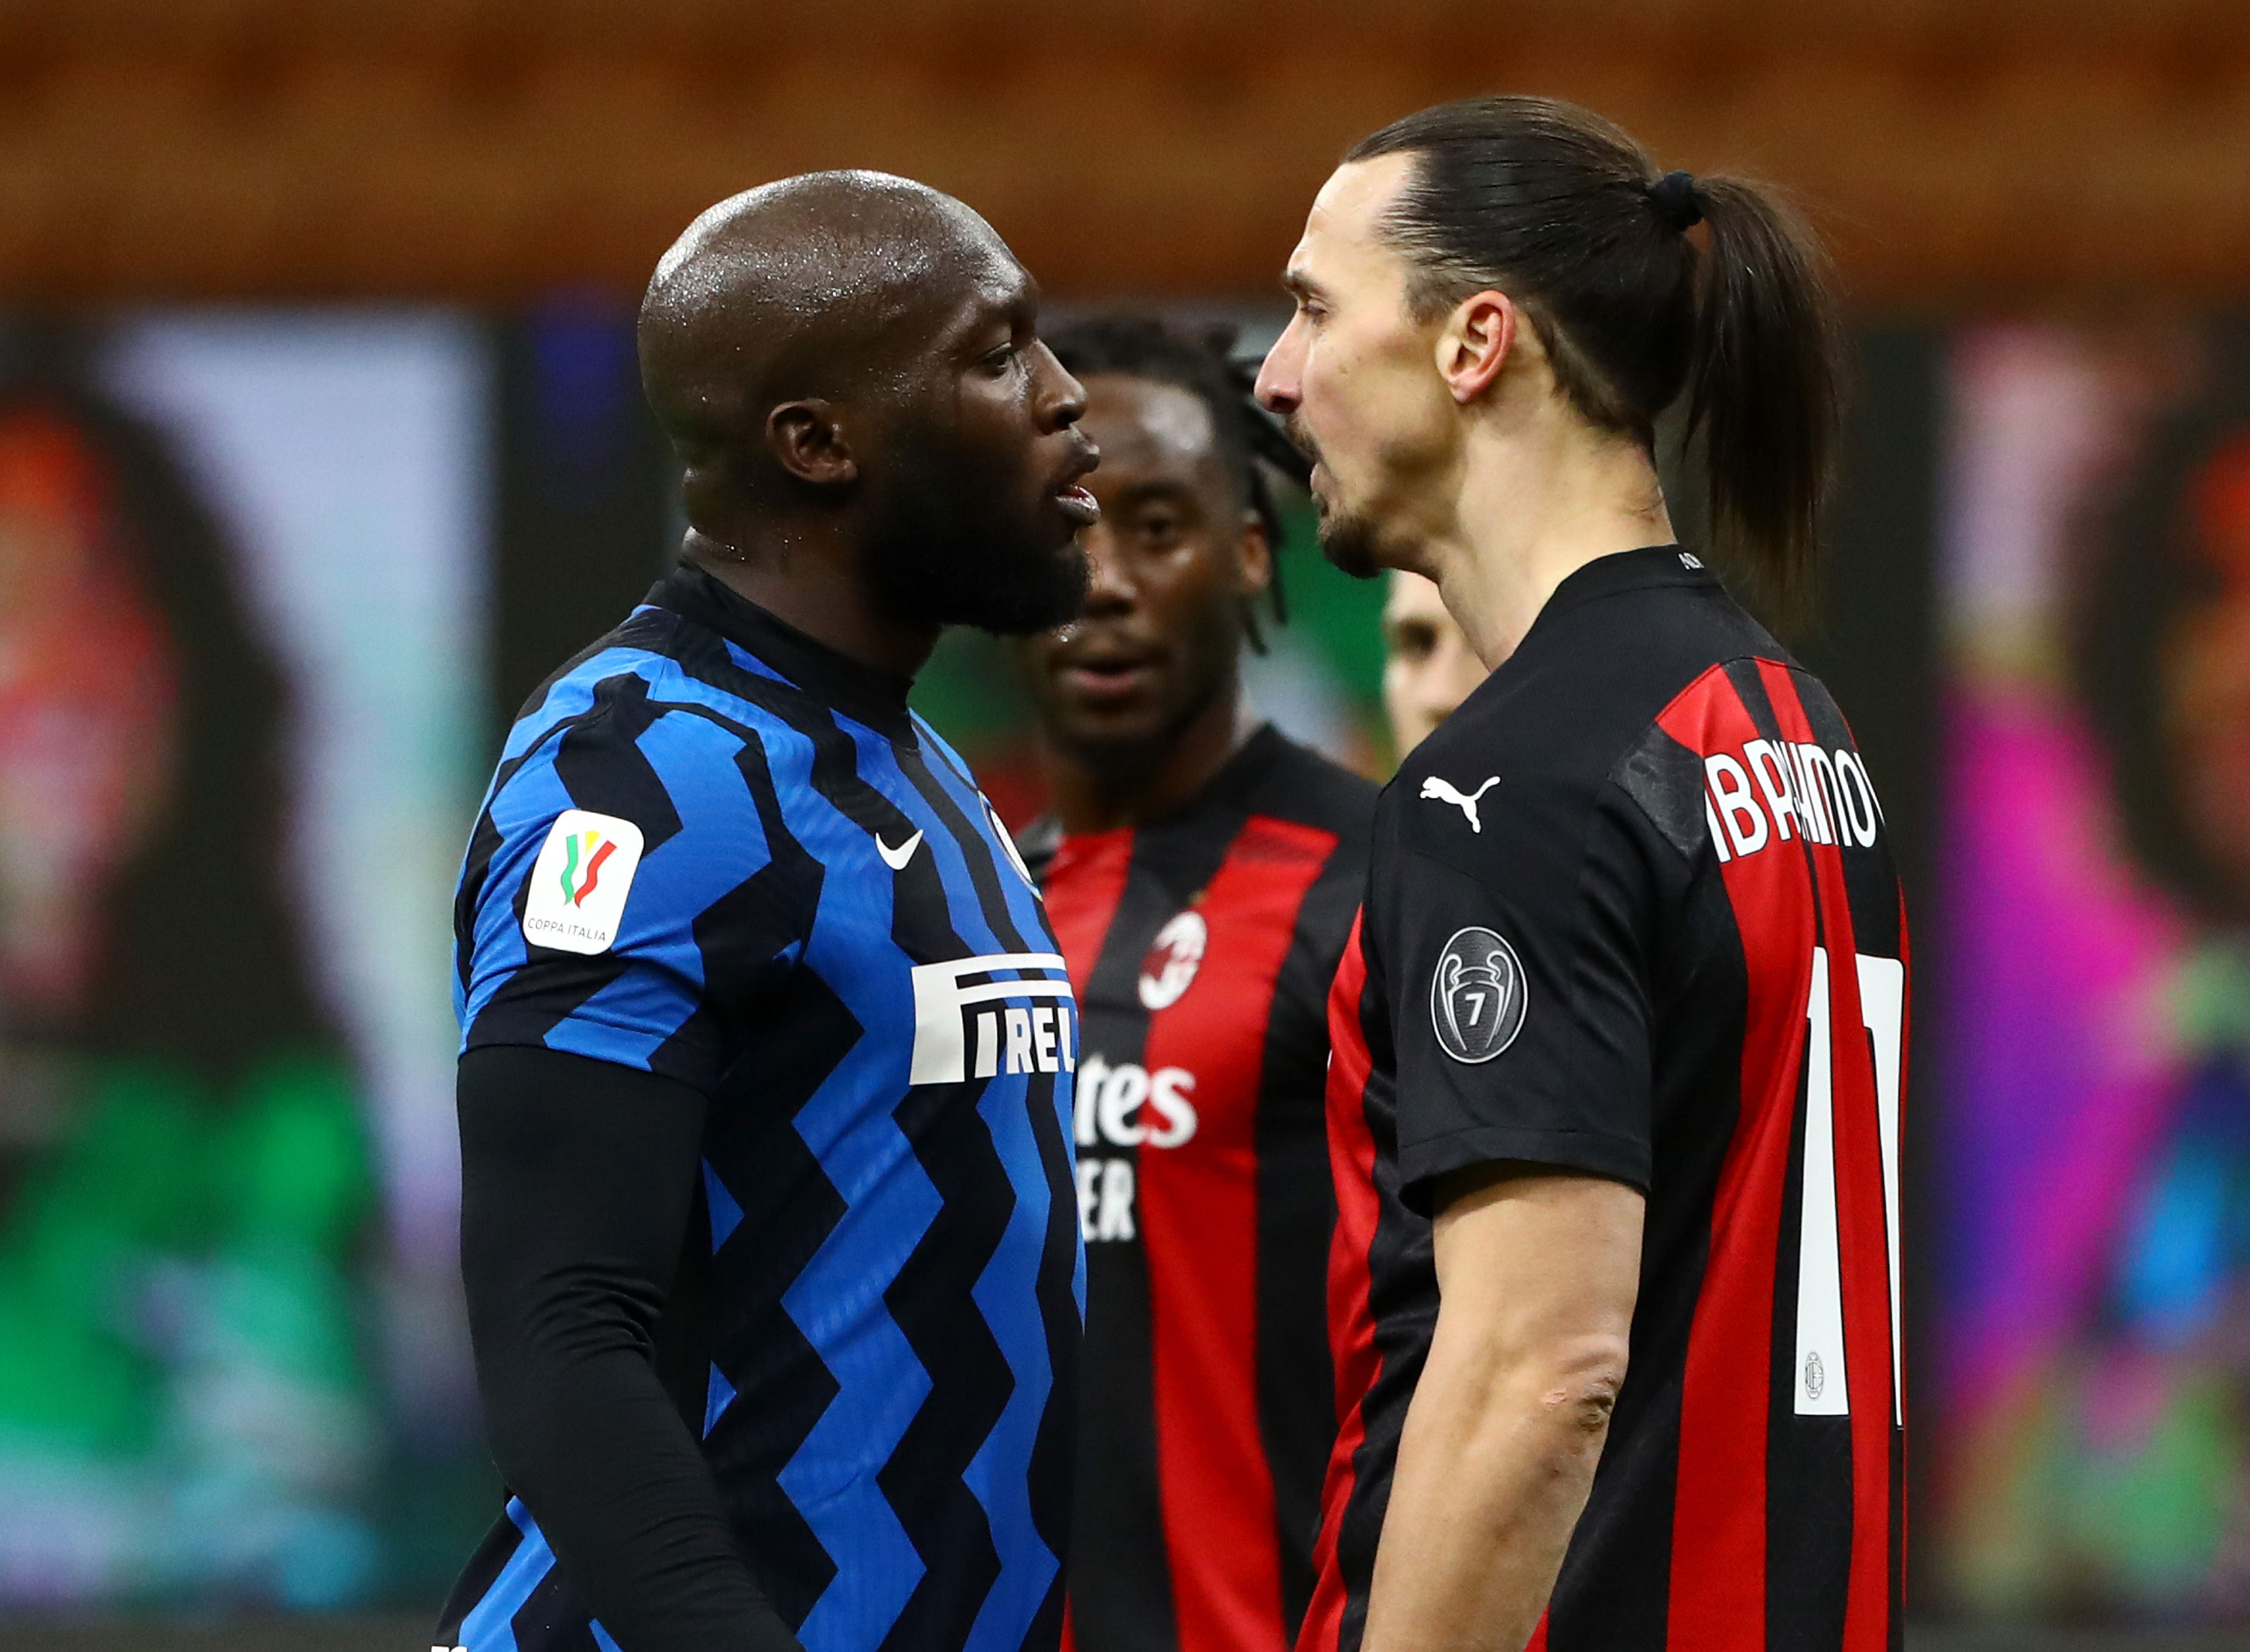 Zlatan Ibrahimovic scores, clashes with Romelu Lukaku and gets red card in fiery Milan derby